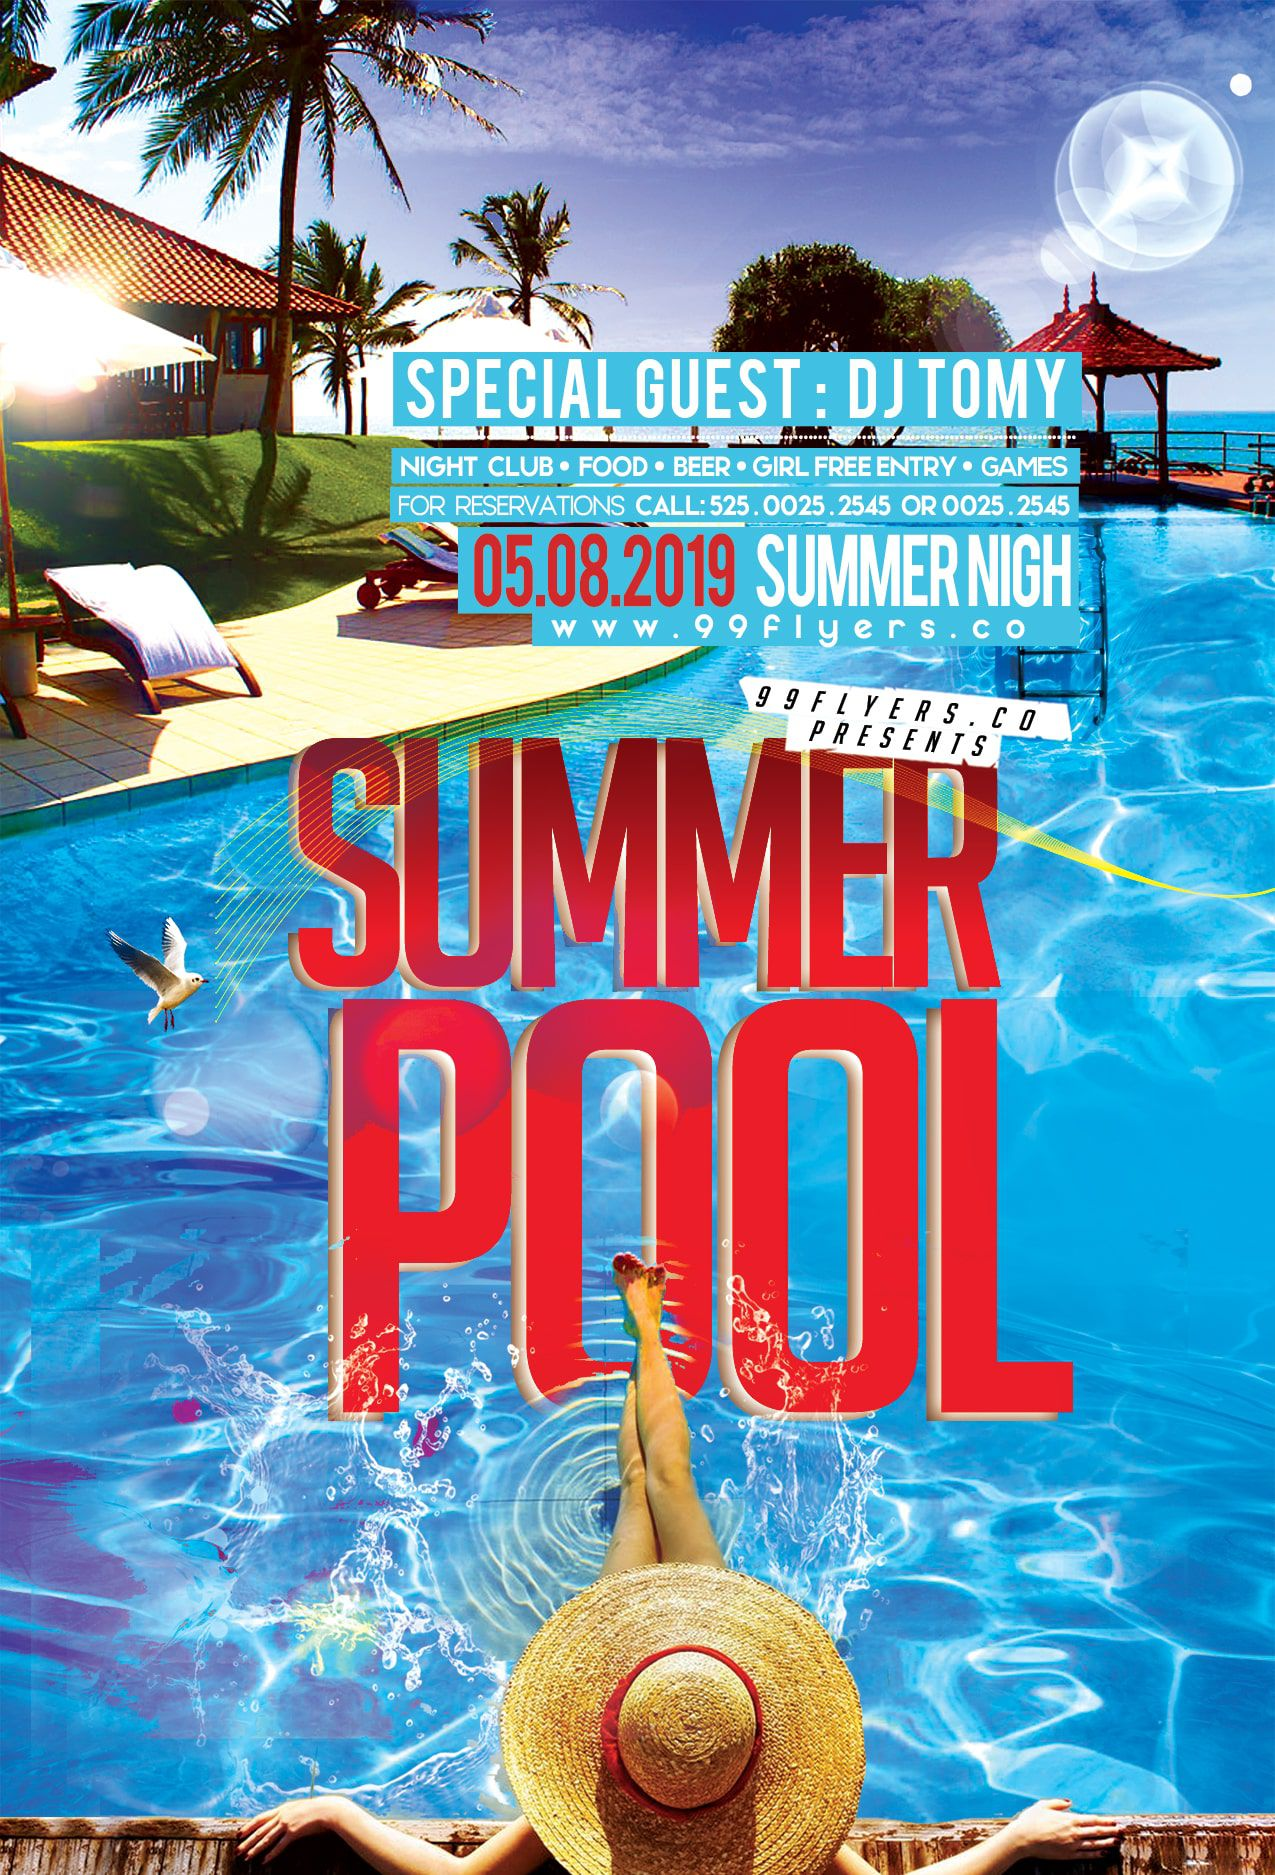 002 Impressive Free Pool Party Flyer Template Psd Concept  PhotoshopFull